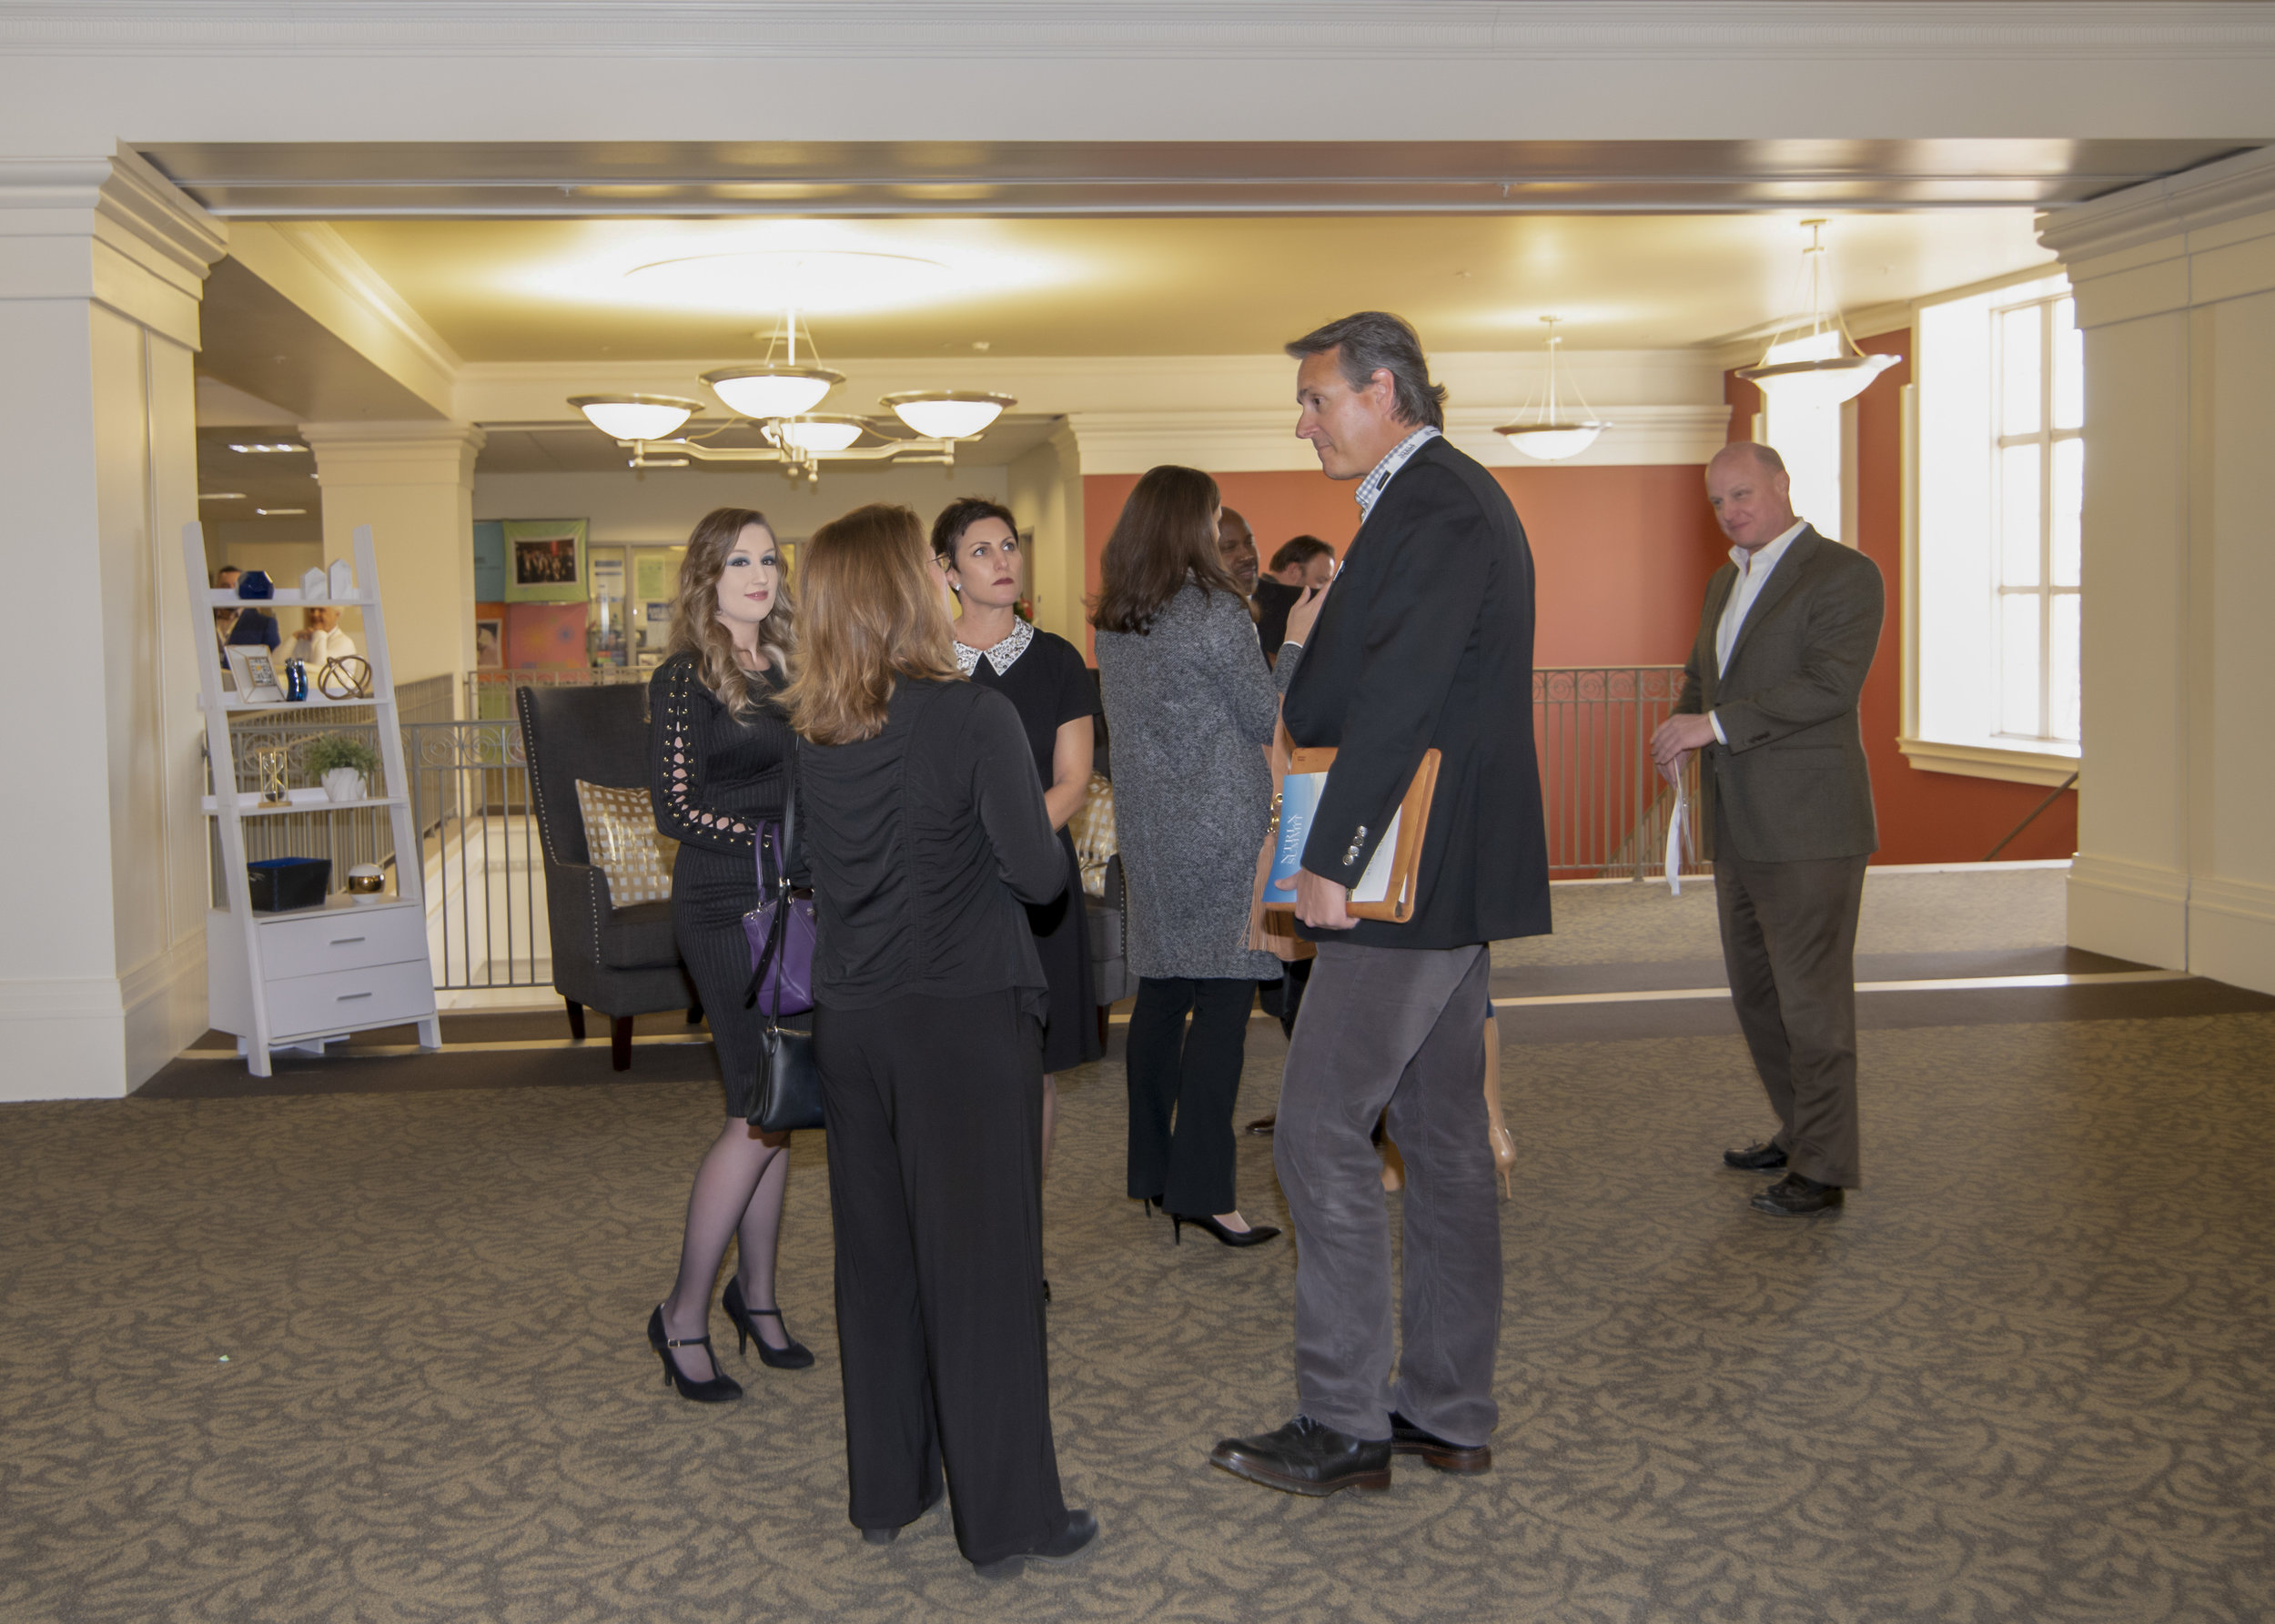 Carol Smith of Creative Home Stagers; Hanes Walker of Premier Sotheby's; Boyce Thies of Thies Realty